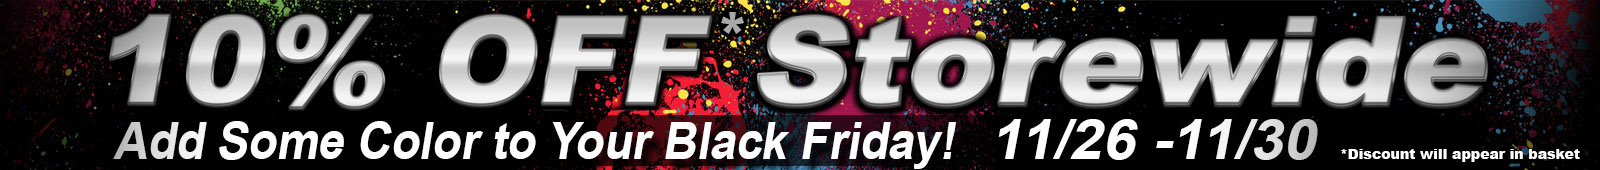 Black Friday Sale 2015